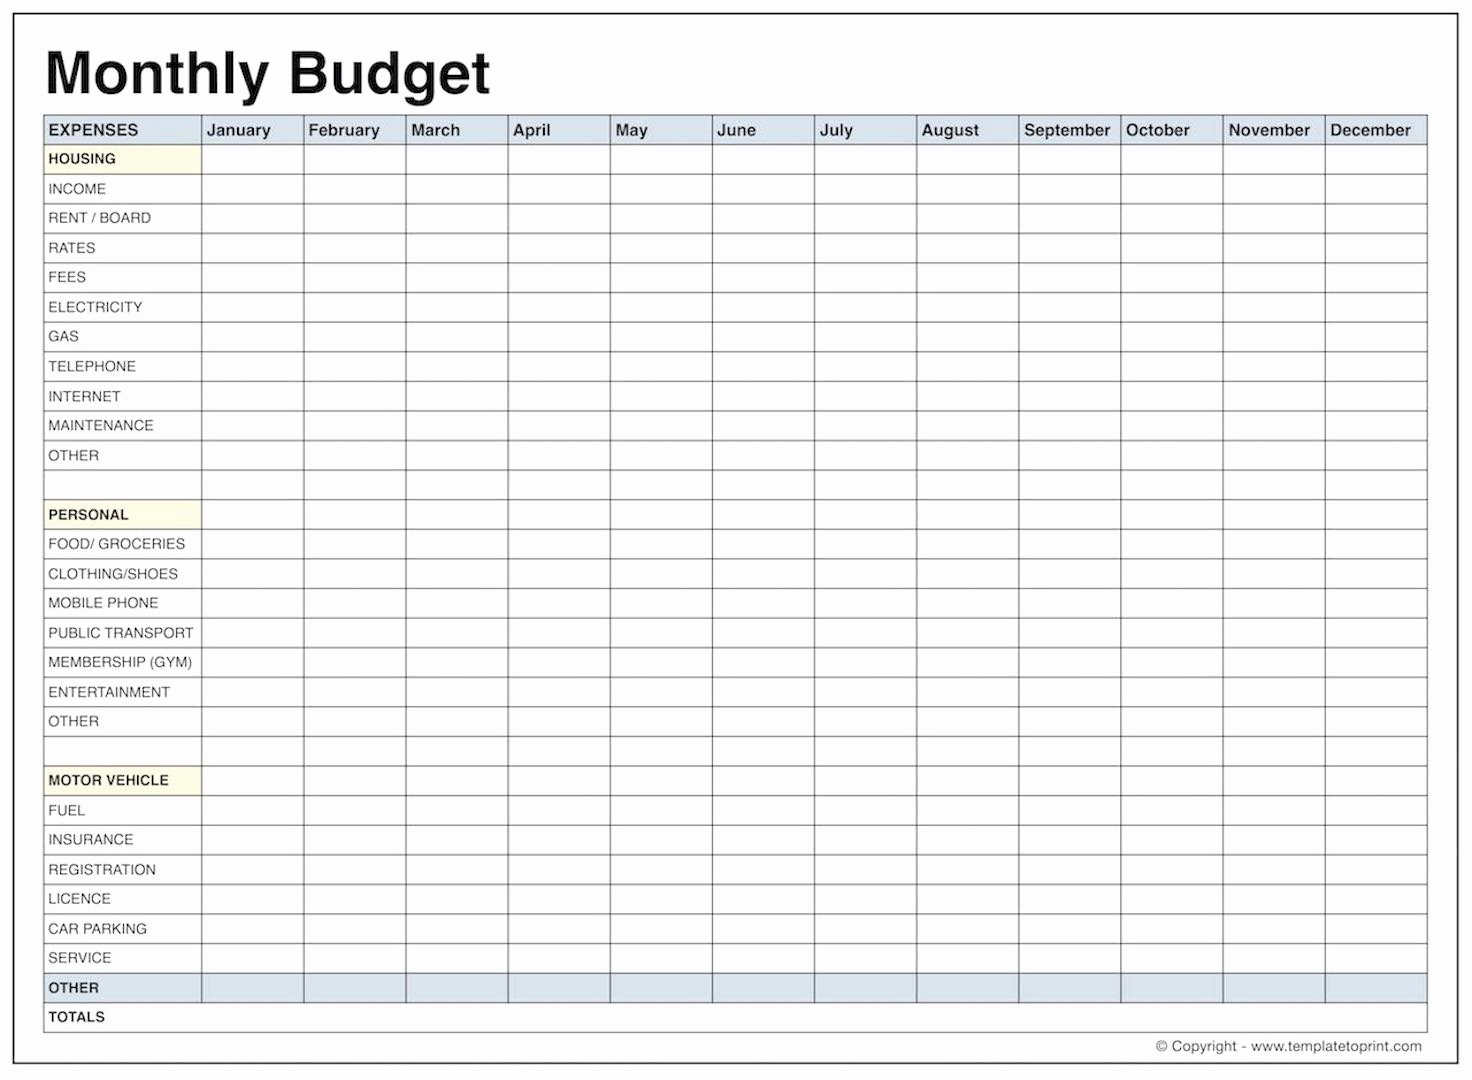 Monthly Budget Excel Spreadsheet Template Lovely Blank Monthly Bud Template Pdf Samplebusinessresume